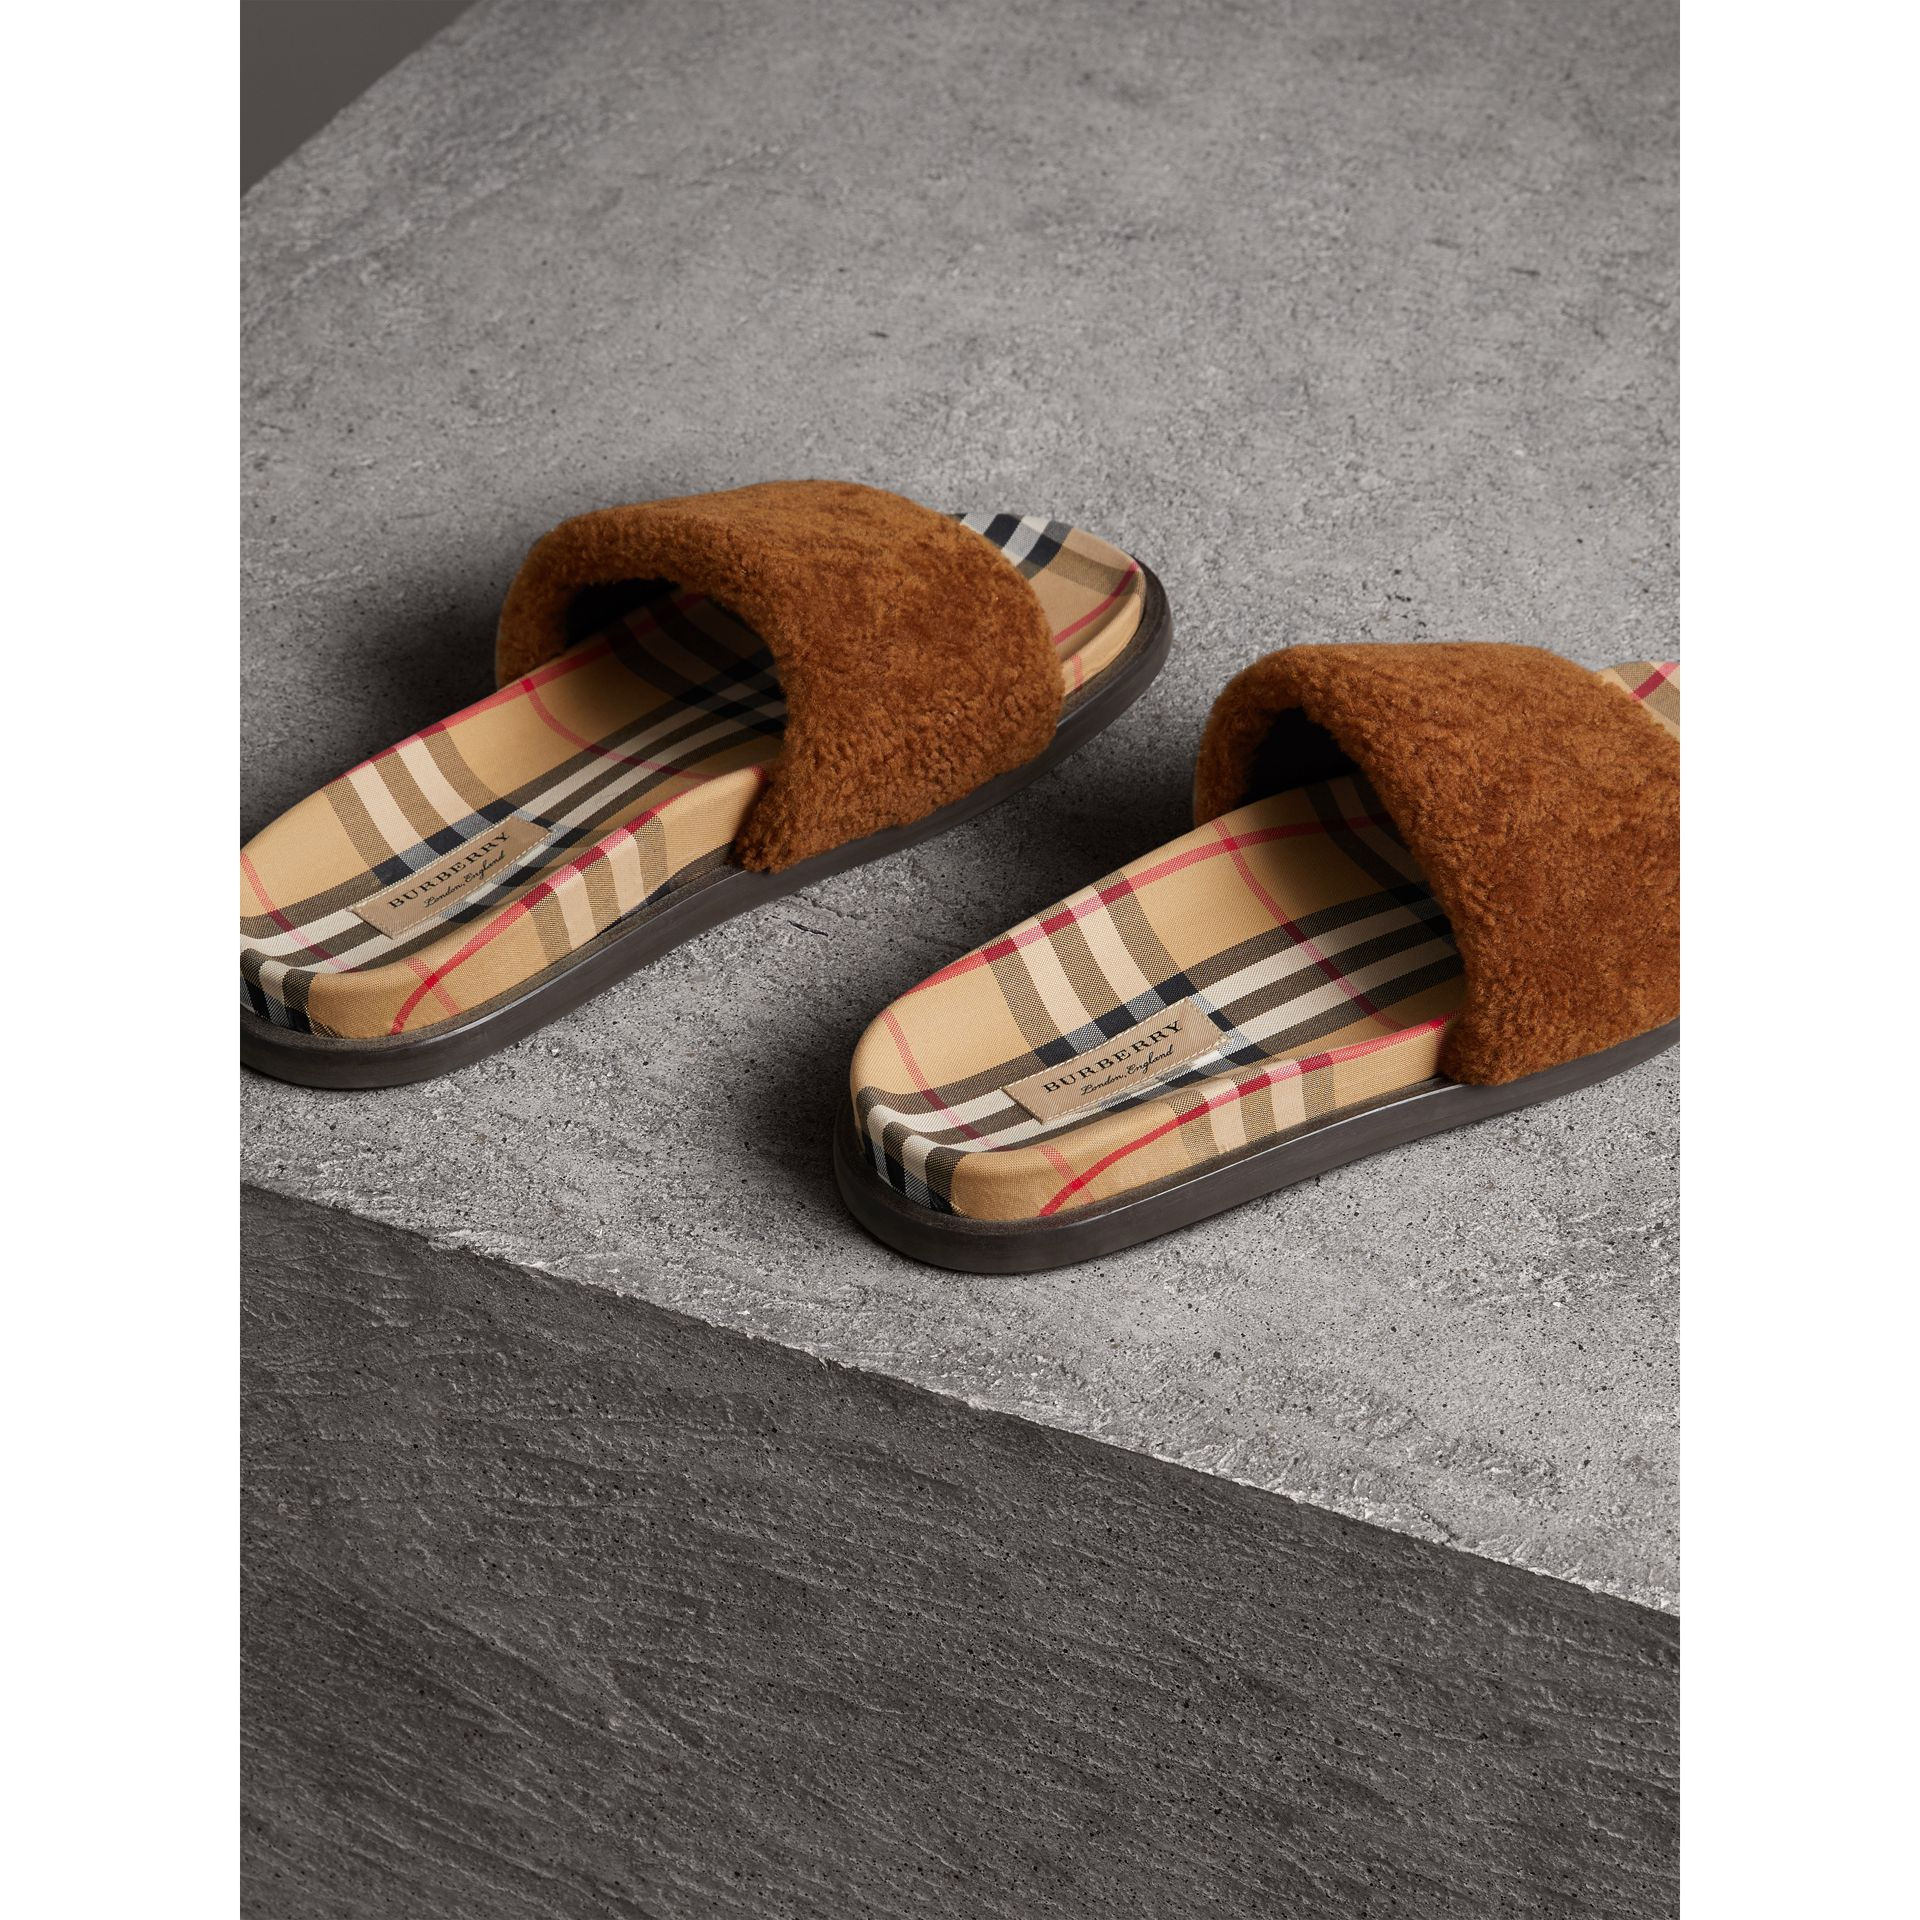 Shearling and Vintage Check Slides in Tan - Women | Burberry Australia - gallery image 3